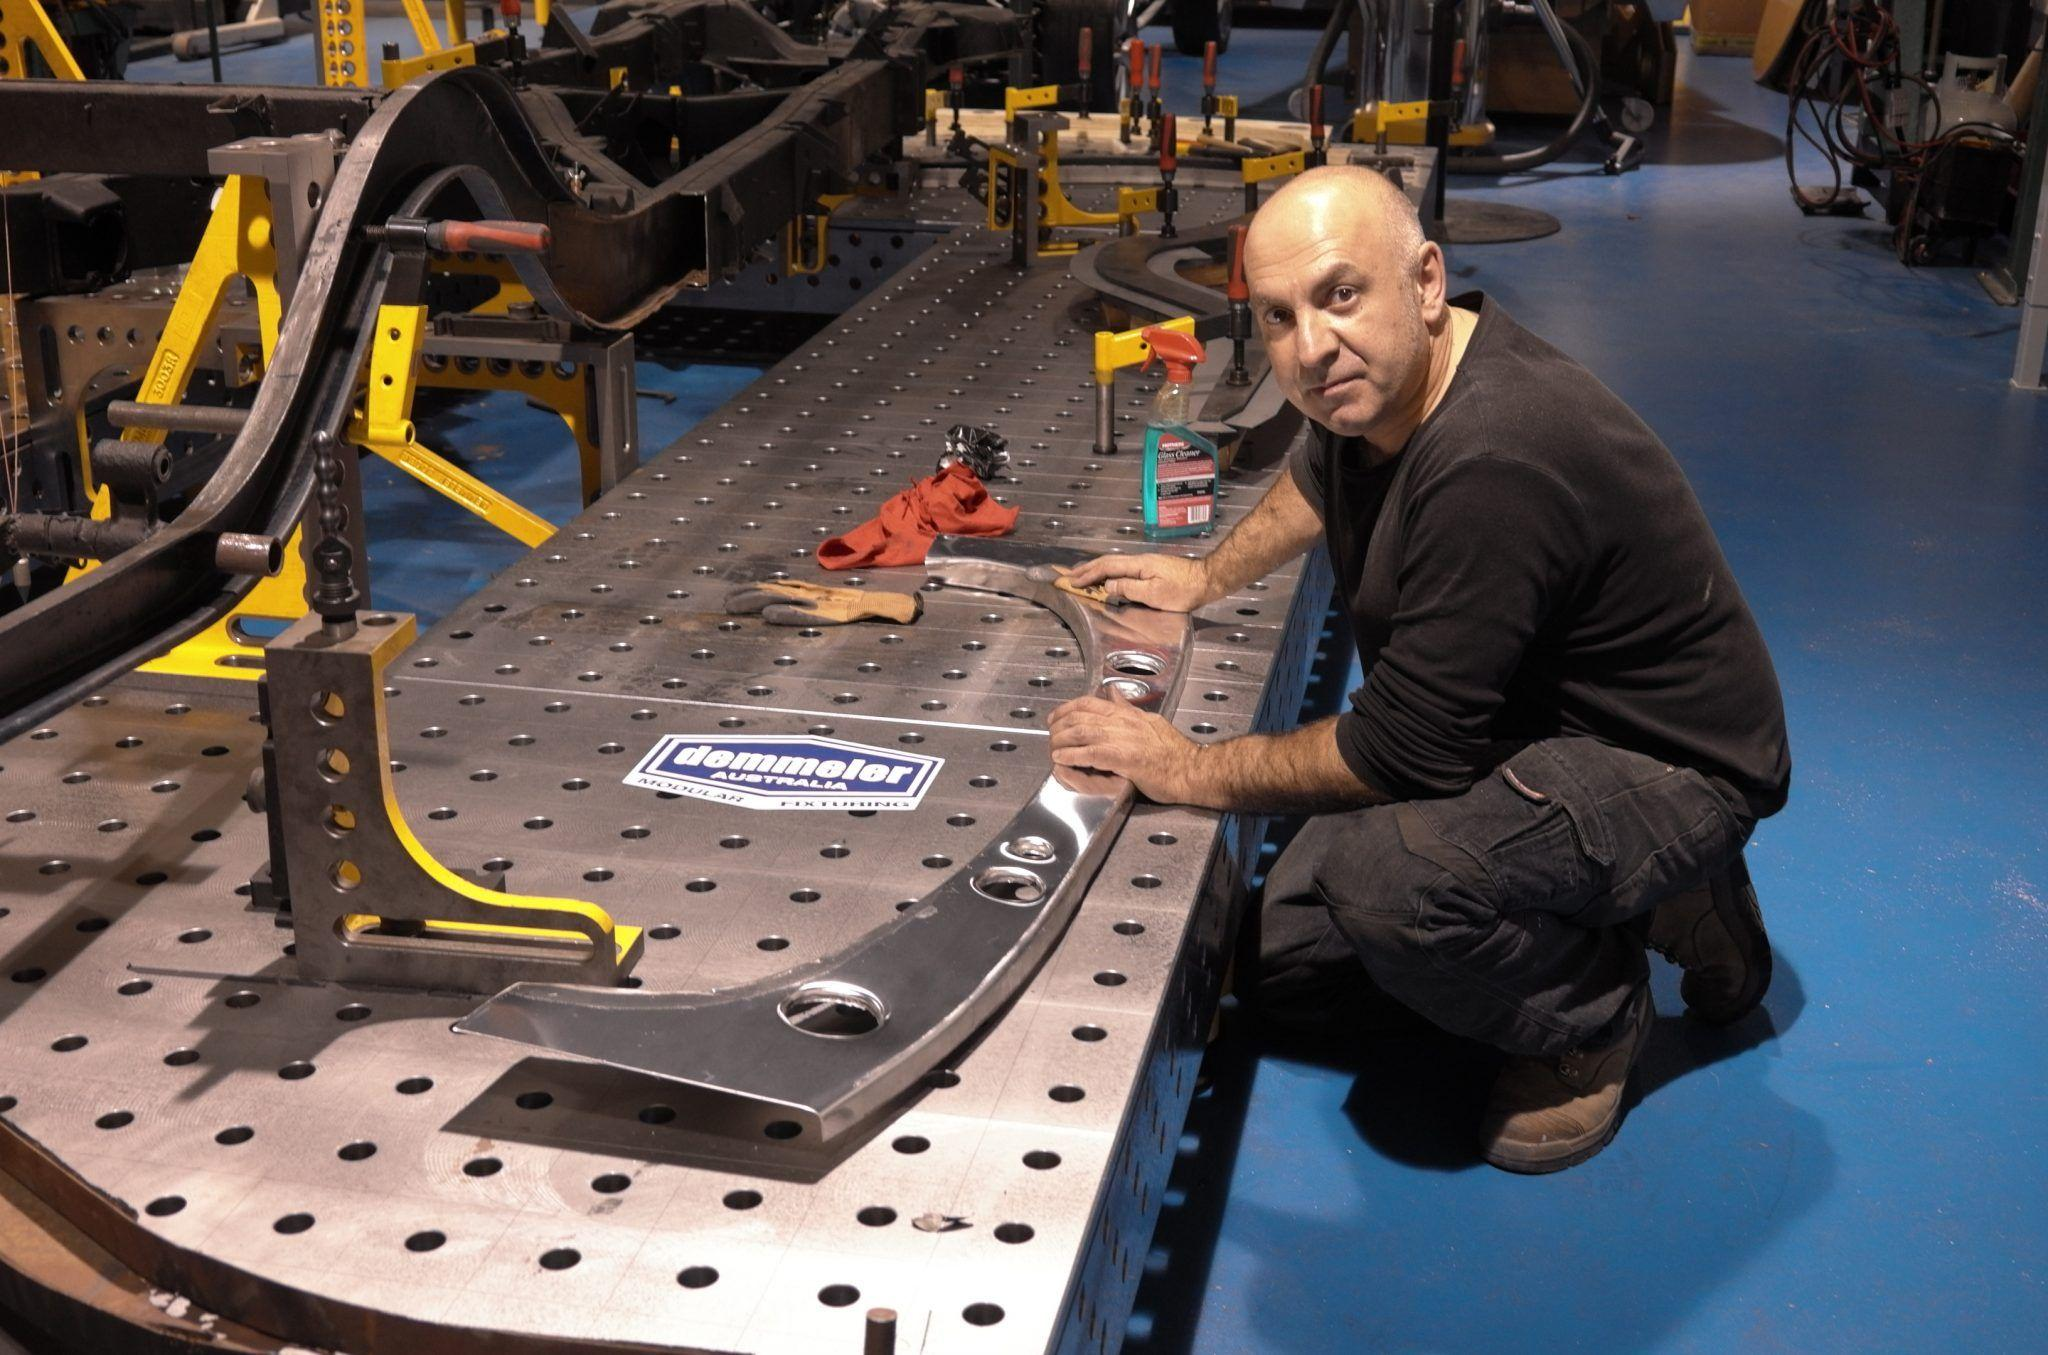 Renowned car restorer Brian Tanti utilises Demmeler welding & fixturing table system in his classic car restoration business